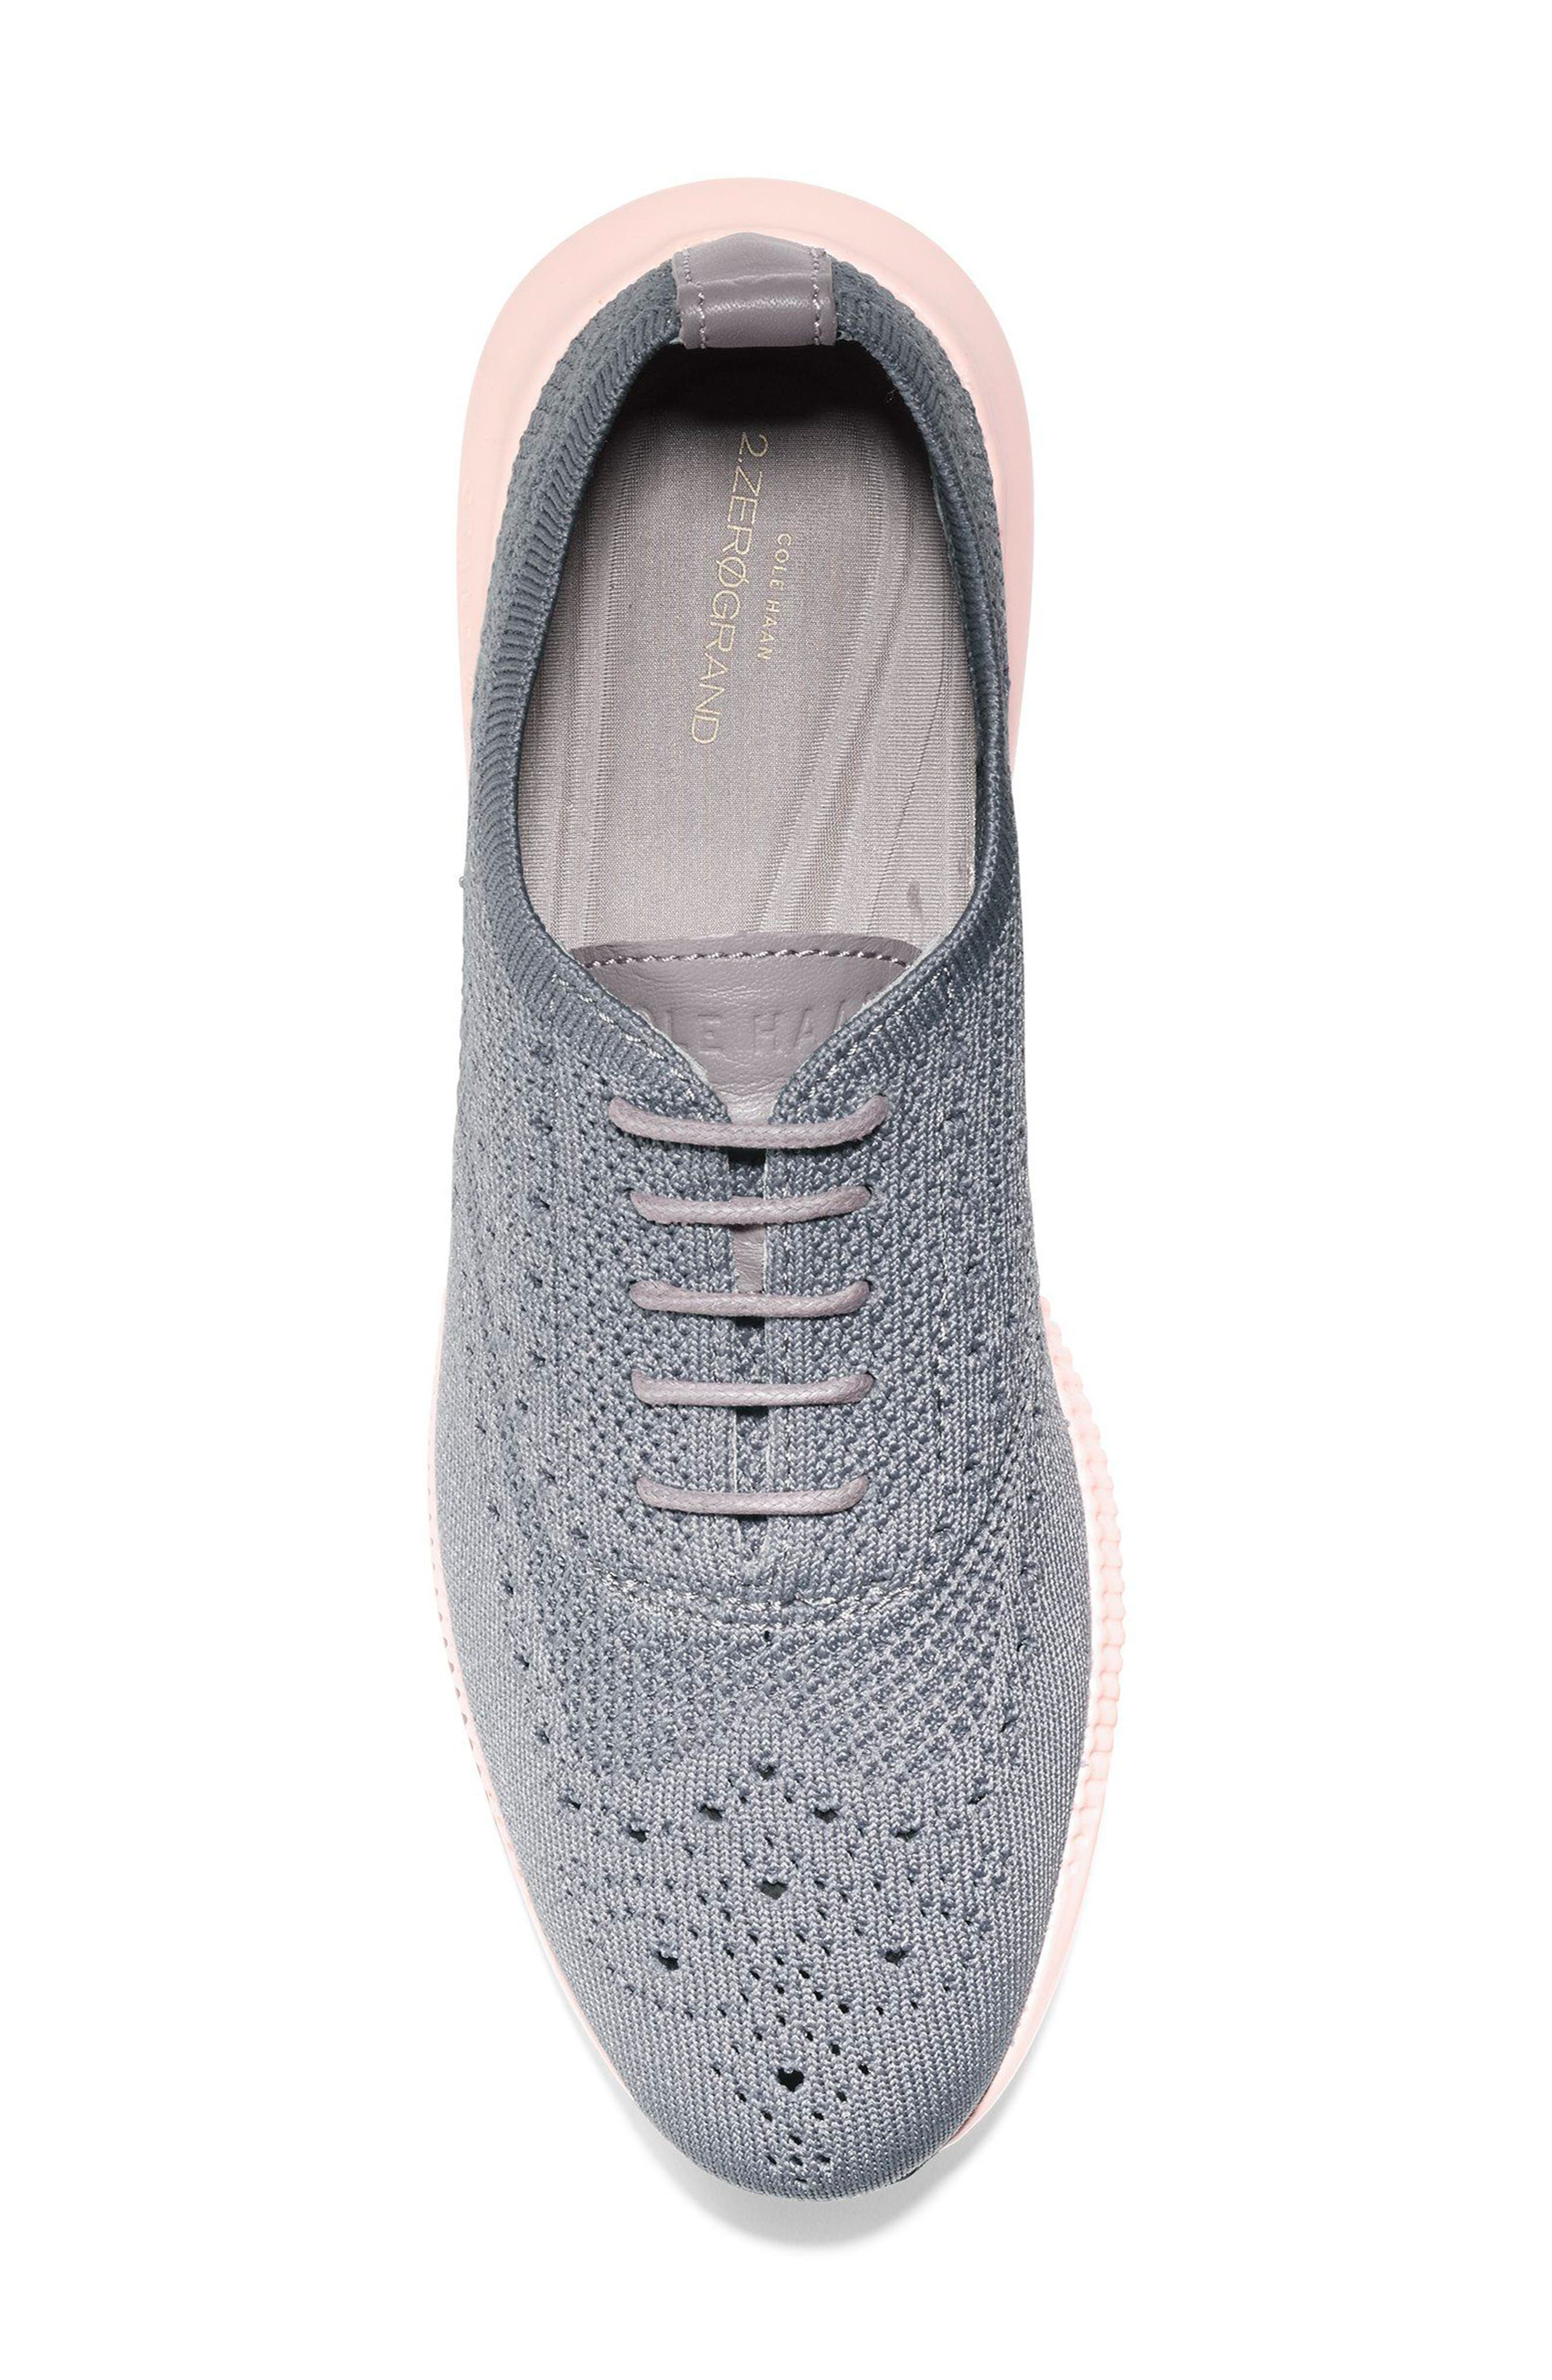 2.ZERØGRAND Stitchlite Wingtip Sneaker,                             Alternate thumbnail 5, color,                             Ironstone Knit Fabric